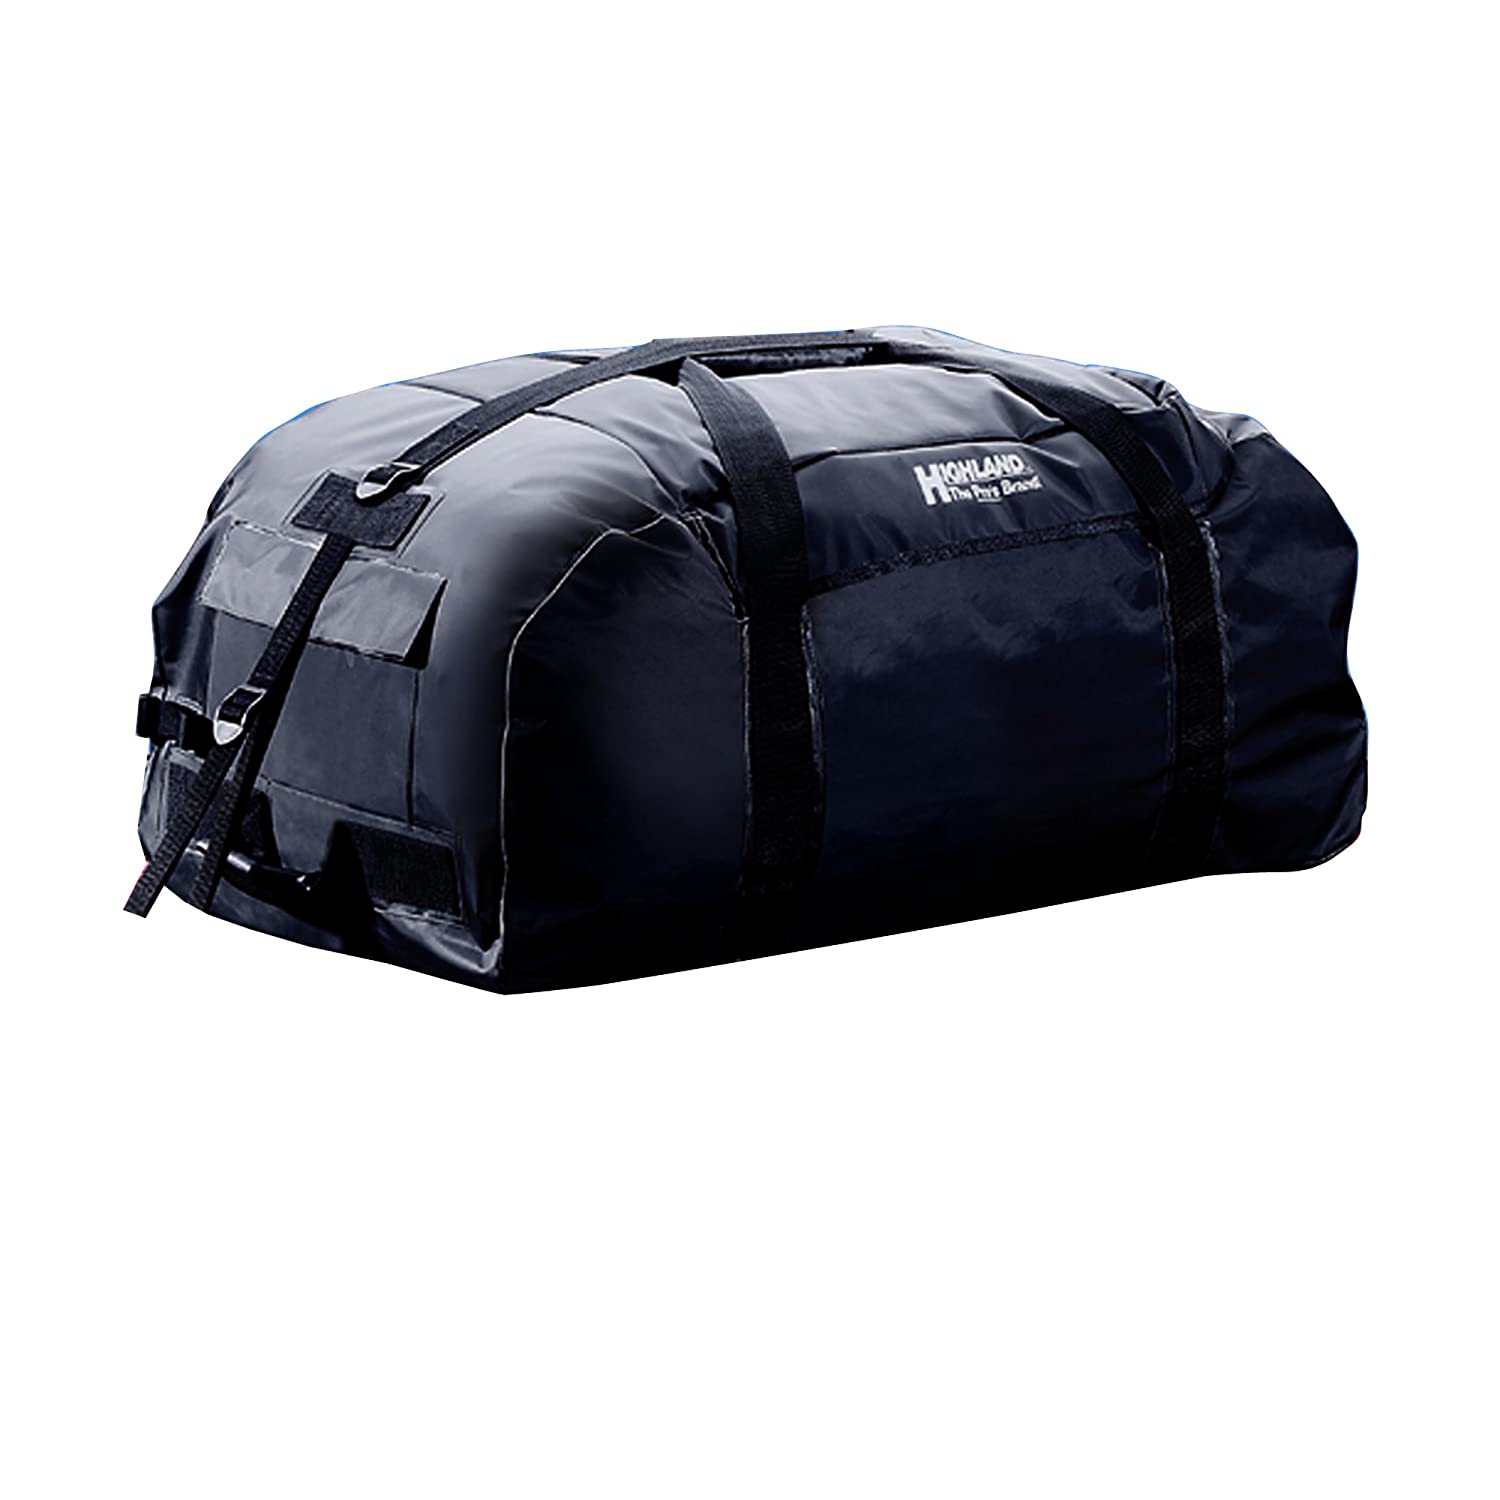 Highland 1039600 Rainproof Car Top Luggage with Wheels BLK:10396